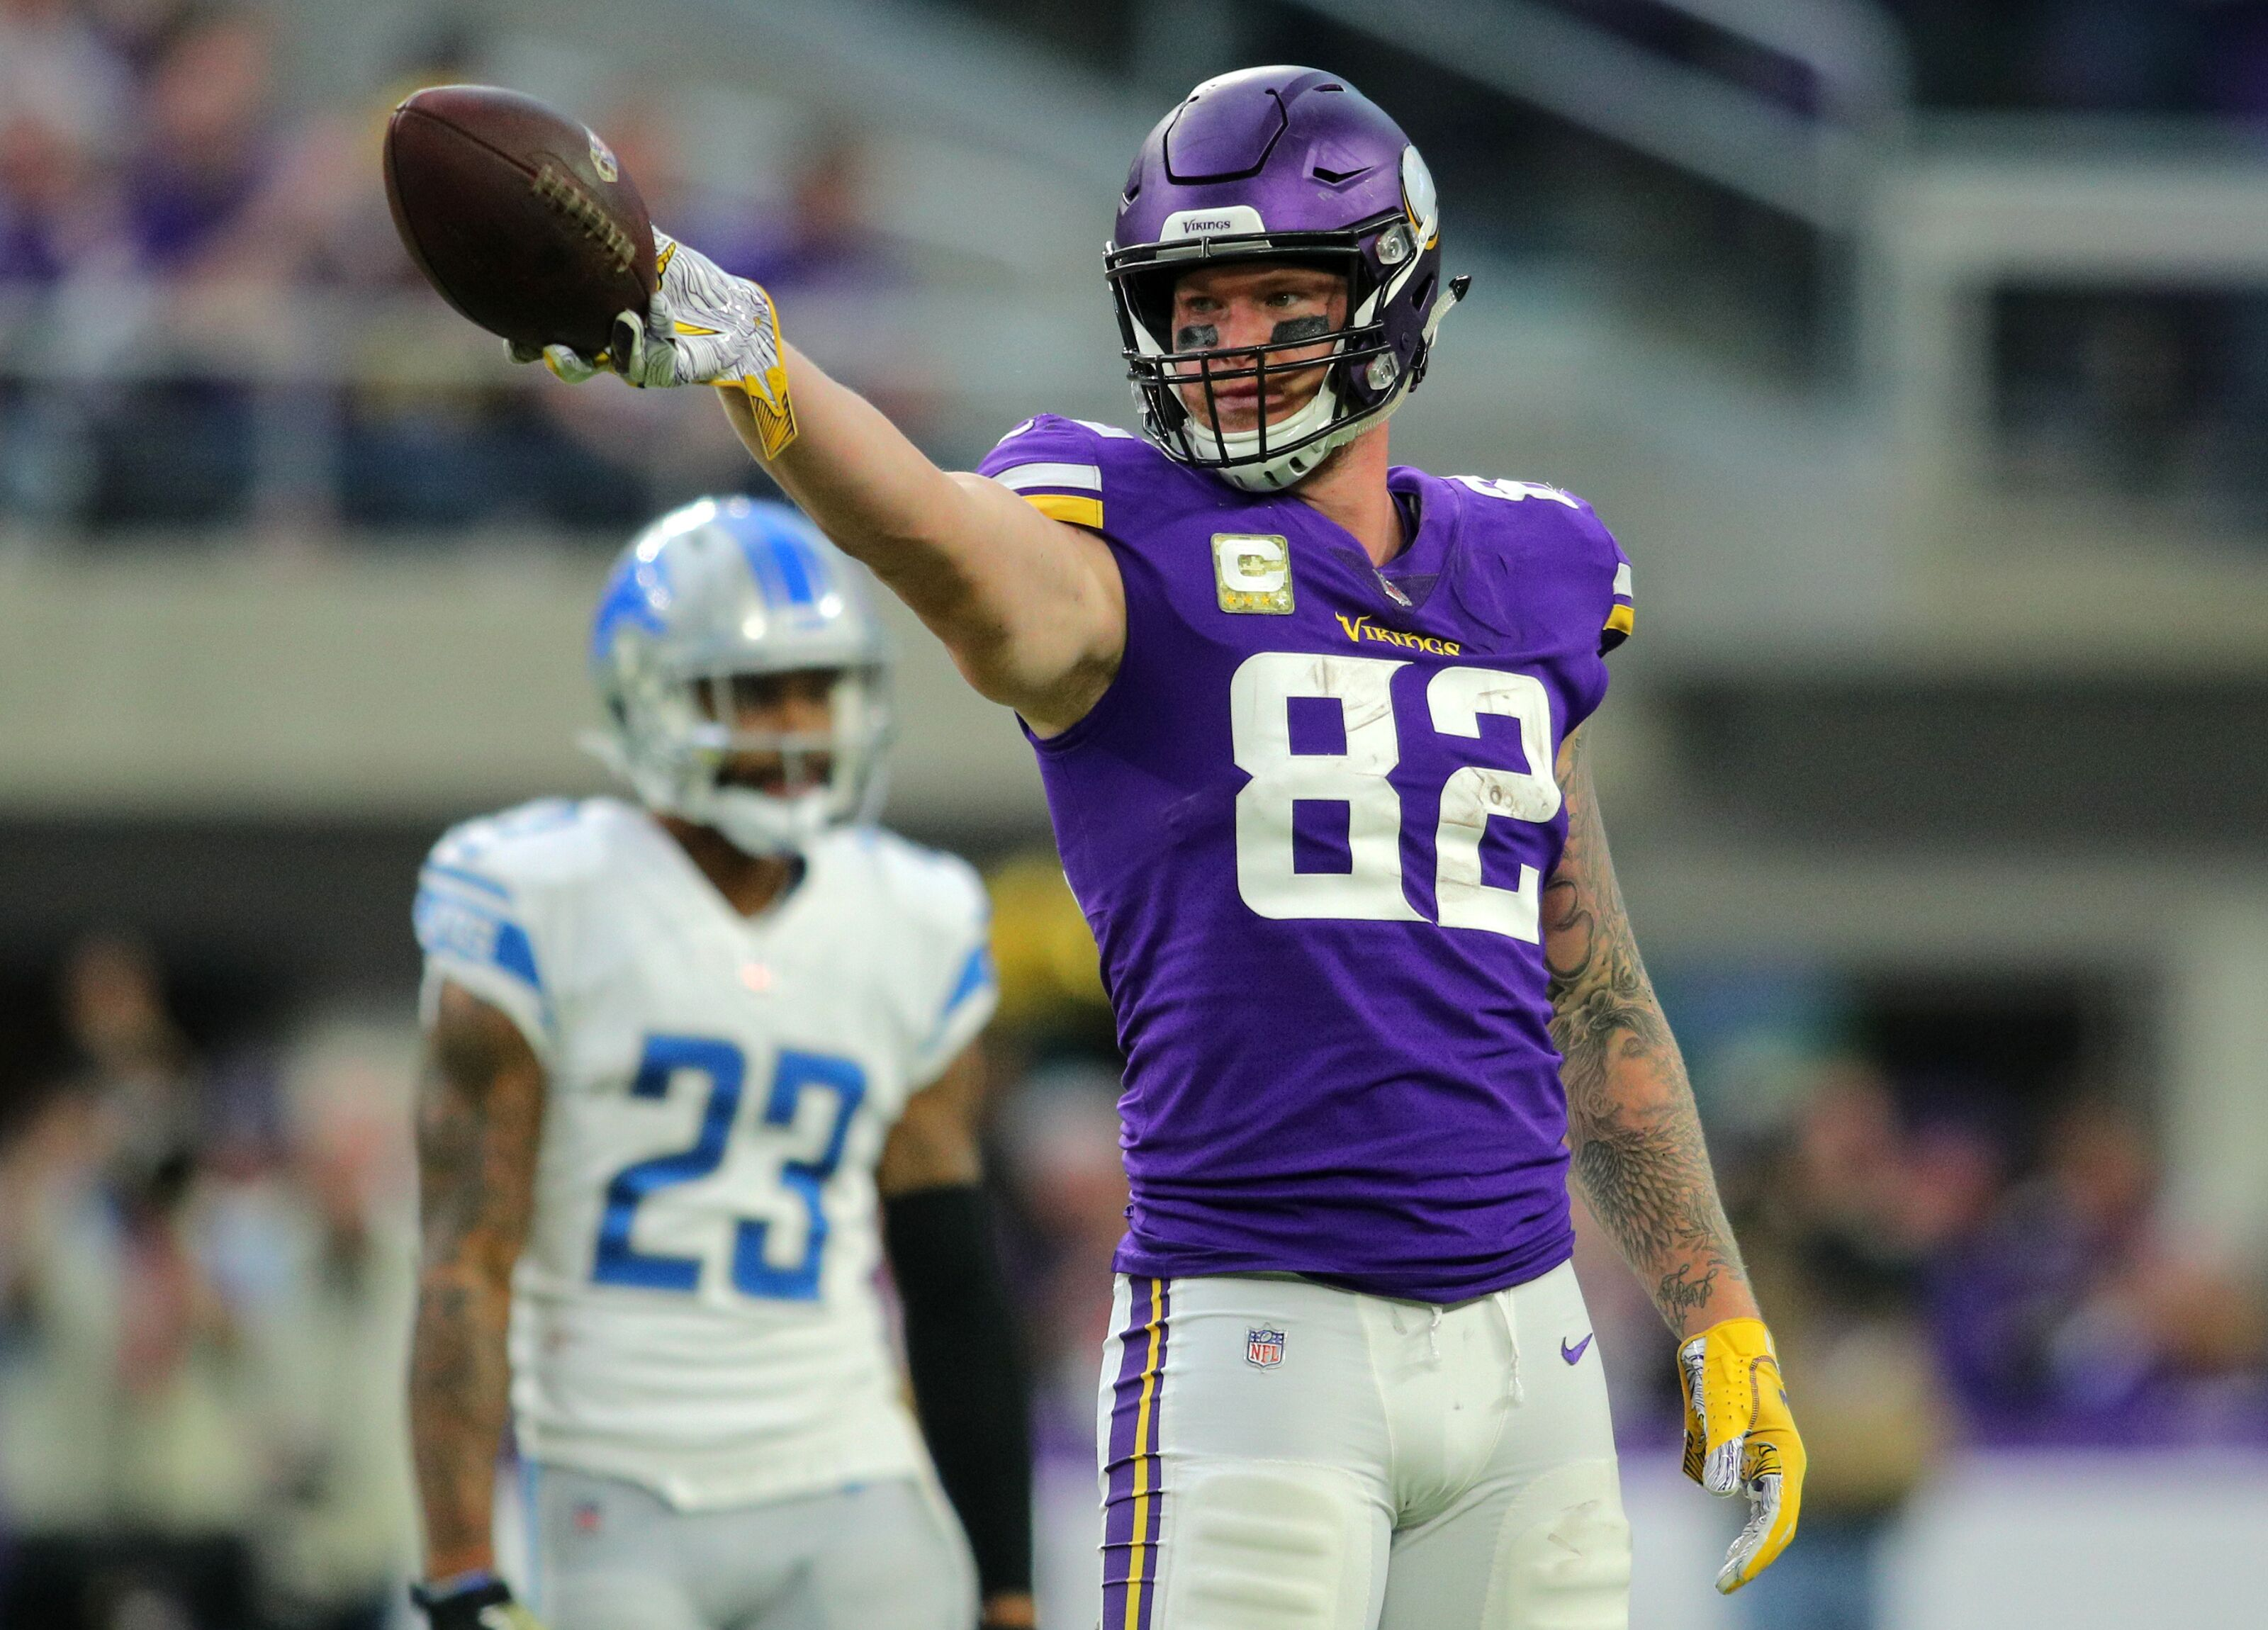 Kyle Rudolph named Vikings' Walter Payton Man of the Year Nominee